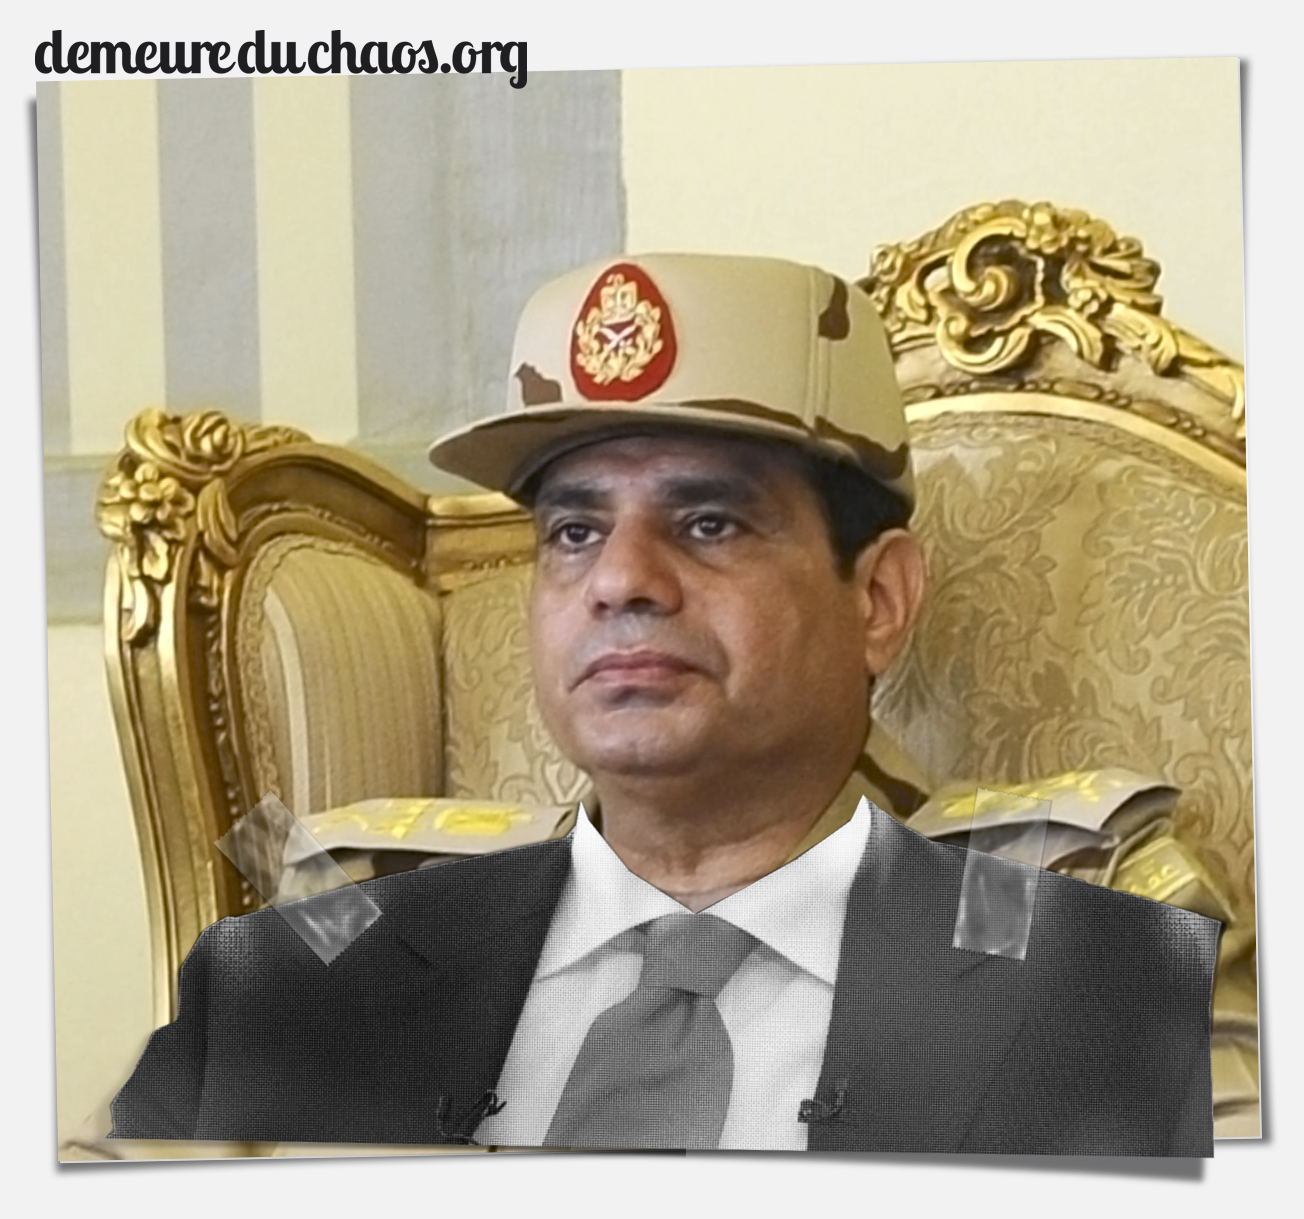 Abdelfatah al Sisi—Washington's man in Cairo: brutal even by the standards of Western henchmen.